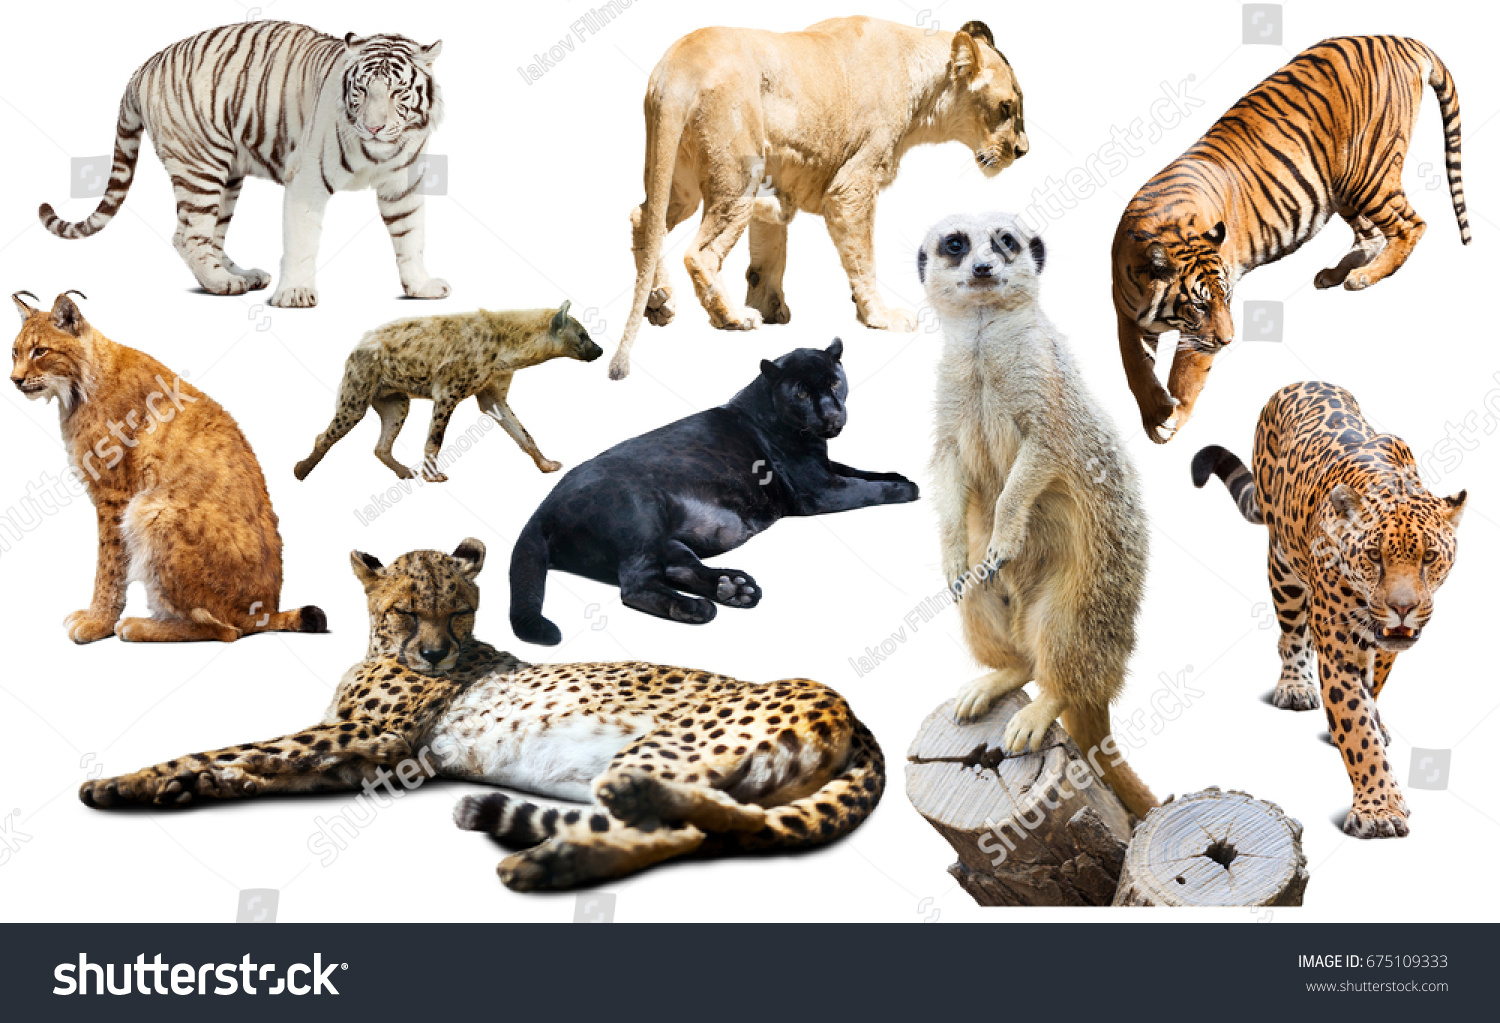 Set of wild mammals isolated over white background, mainly Felidae